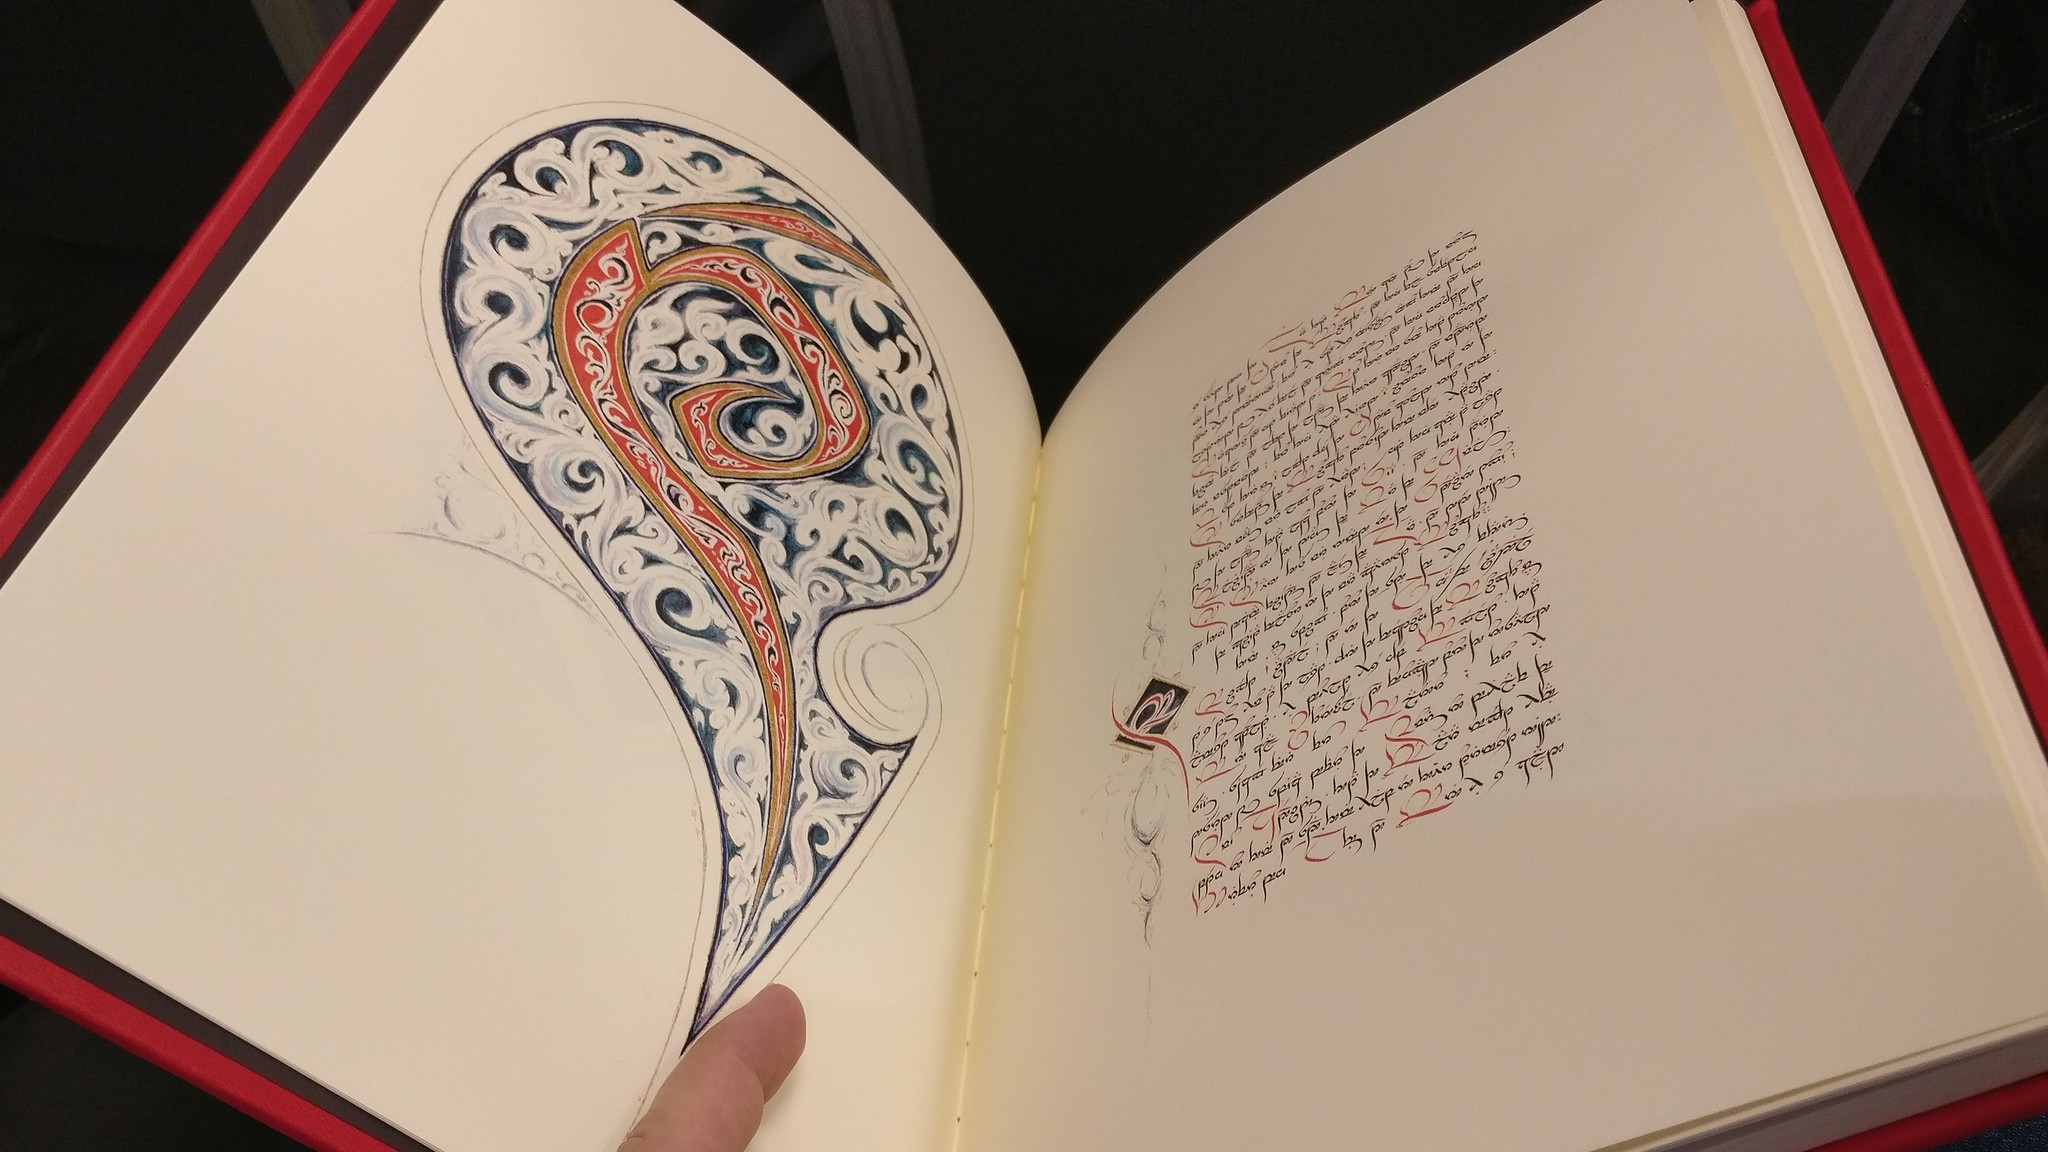 One of the books written marvelously in Tengwar by Tsvetelina Krumova